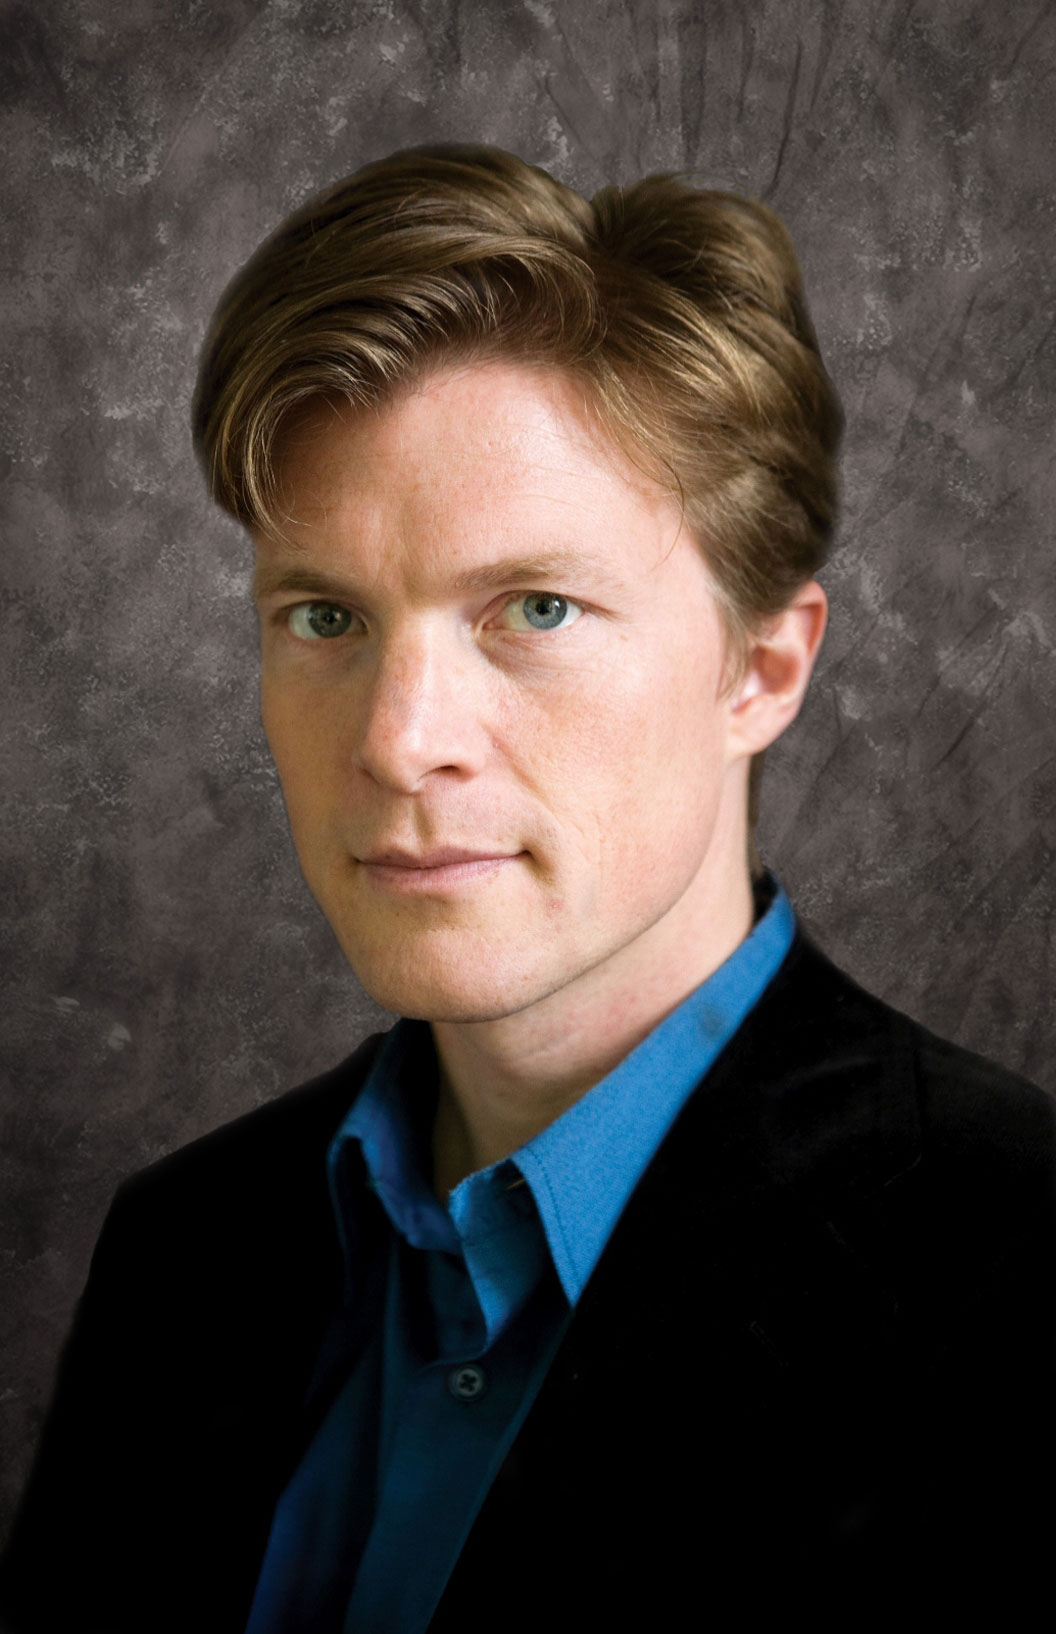 globalization is good johan norberg Johan norberg, born 1973, is a swedish author and historian, devoted to promoting economic globalization and what he regards as classical liberal positions more information about progress is here.